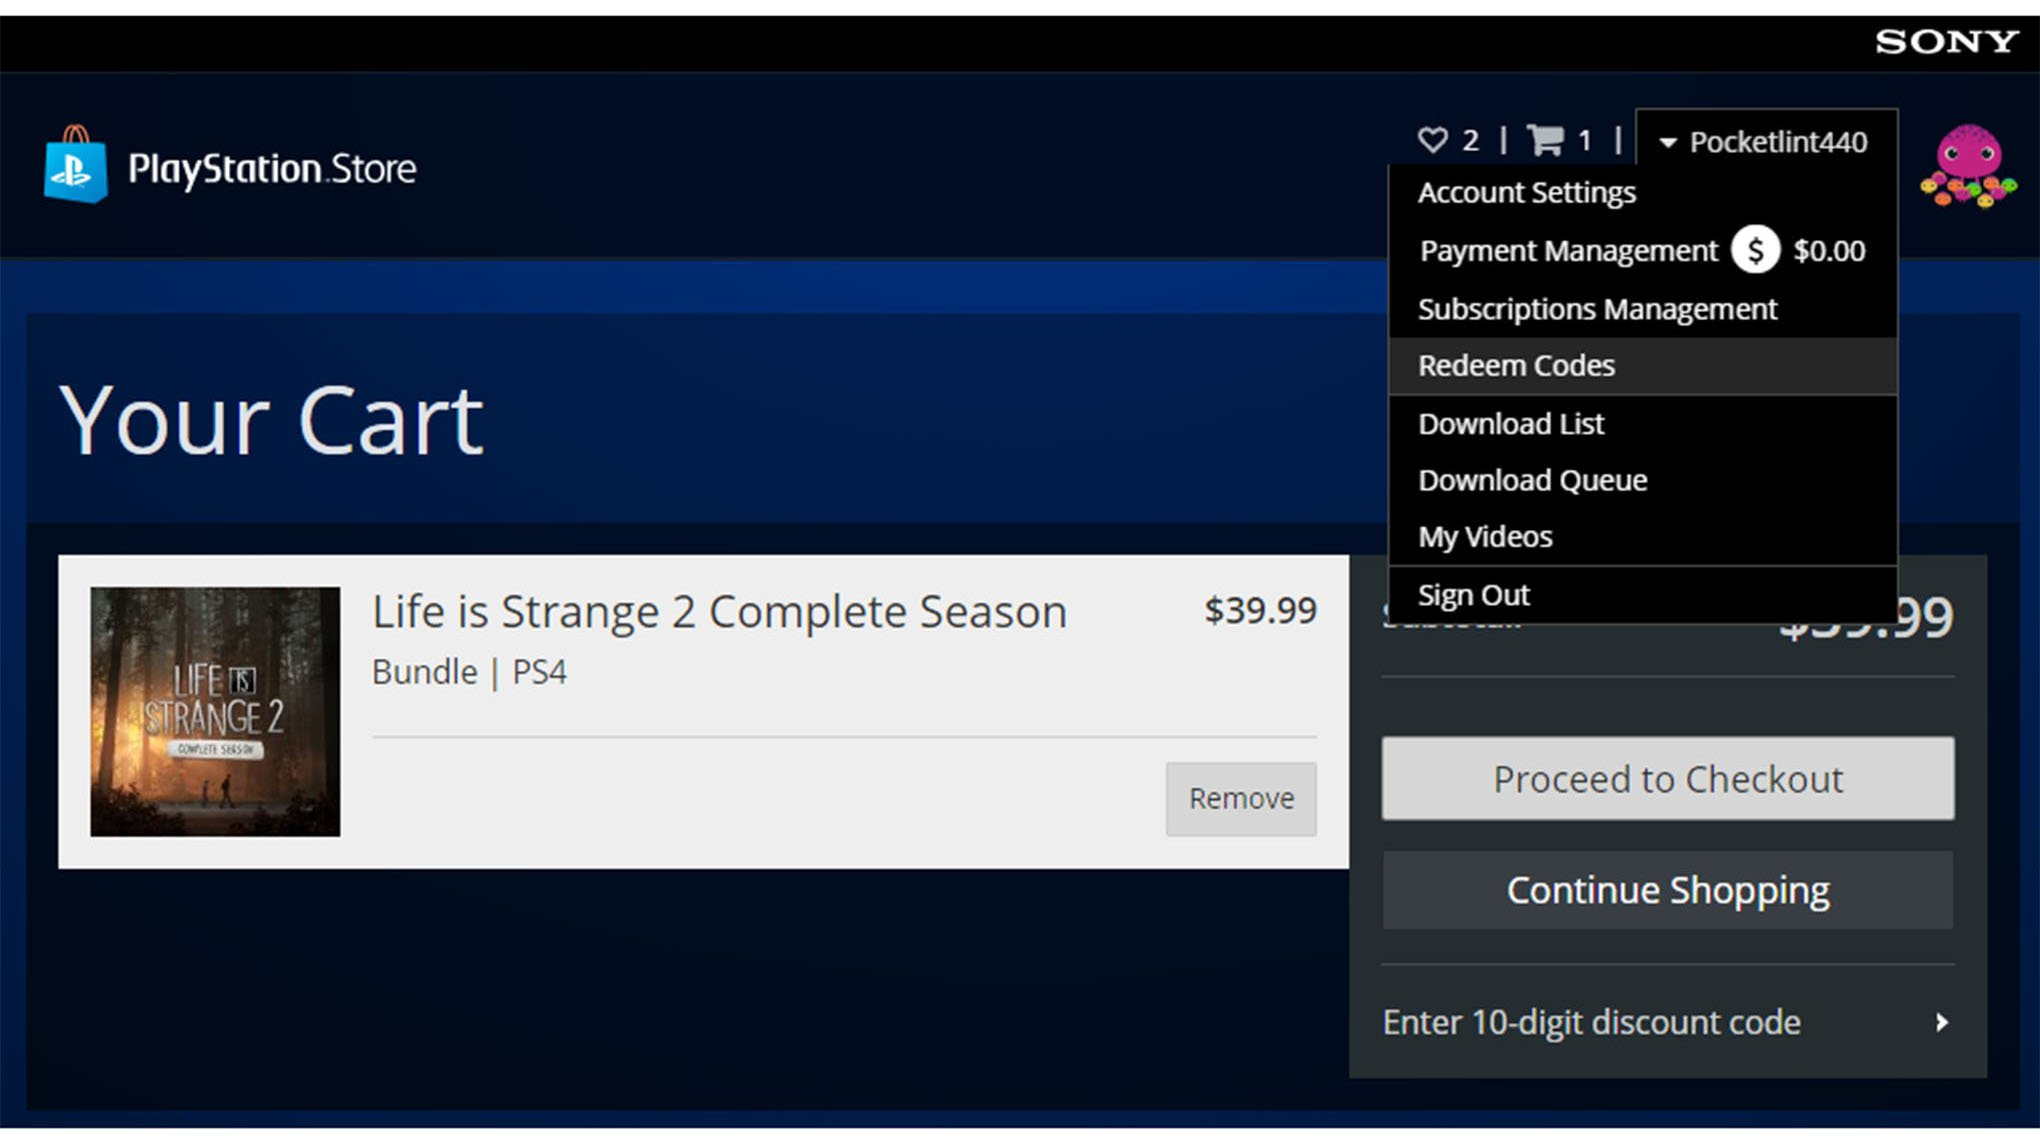 Can You Combine Gift Cards And Credit Cards On Playstation